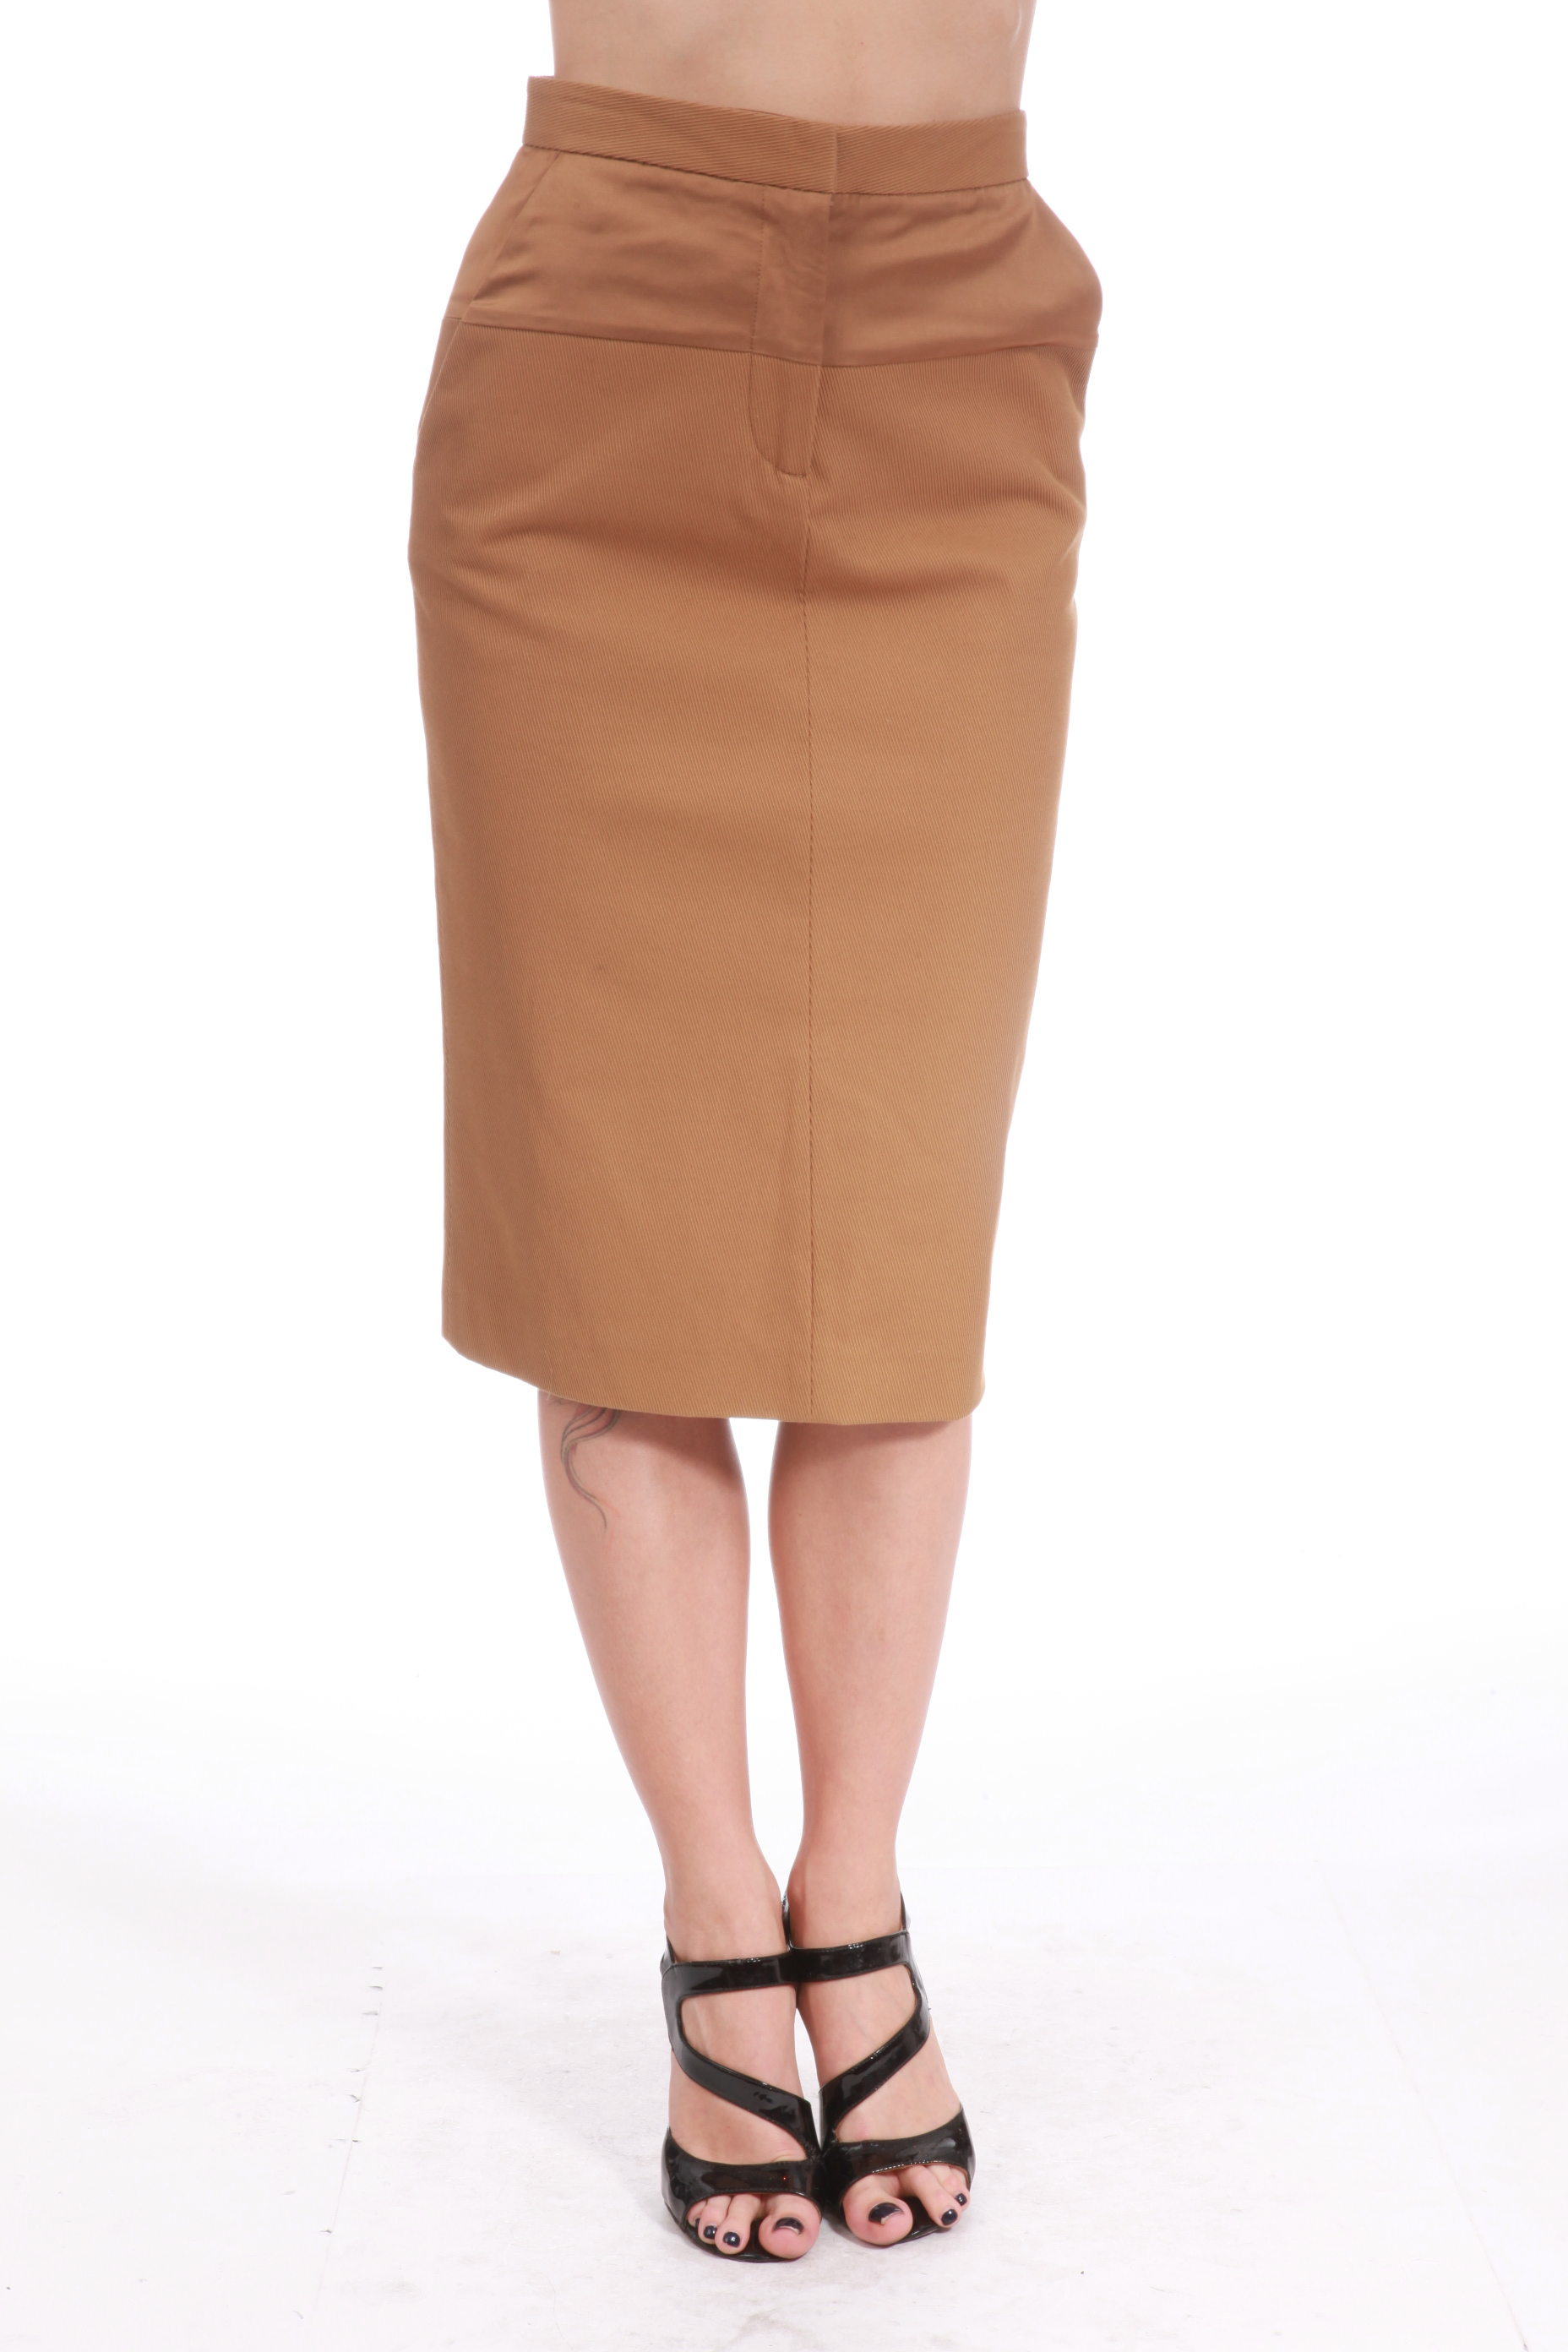 D&G BX3 D&G SKIRT BROWN Sz 40 SI0744 at Sears.com